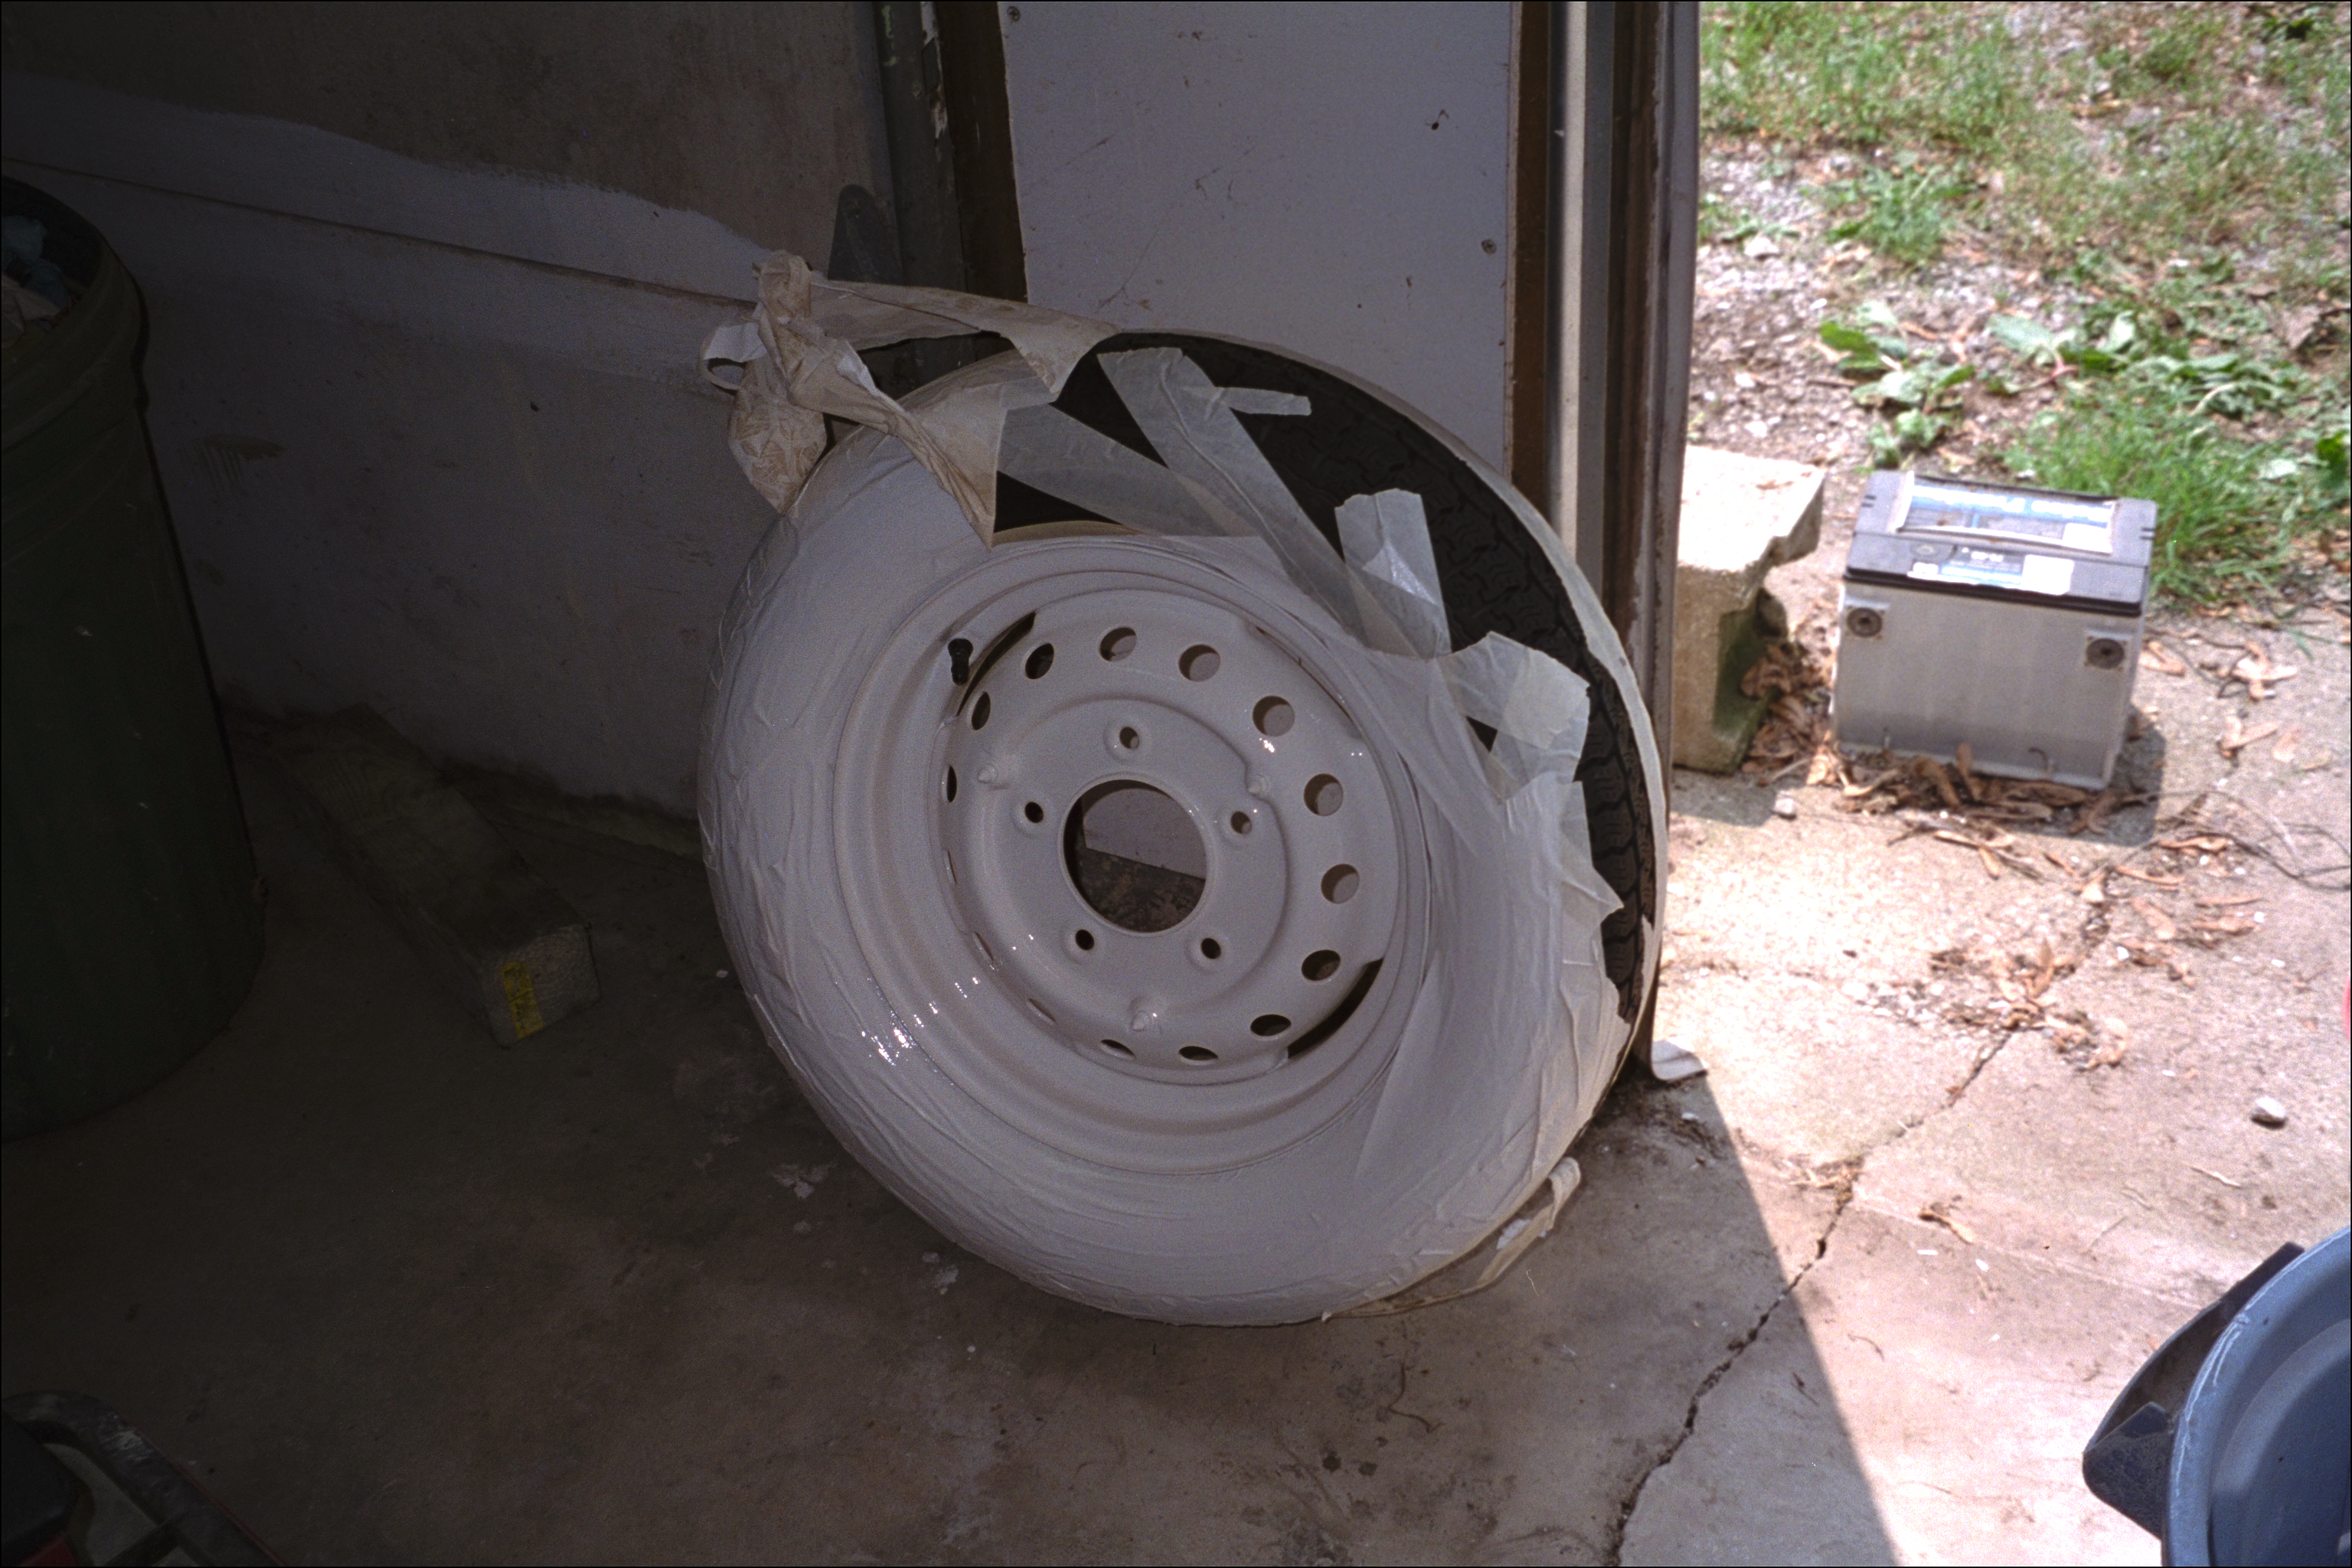 Removing masking from tires after drying